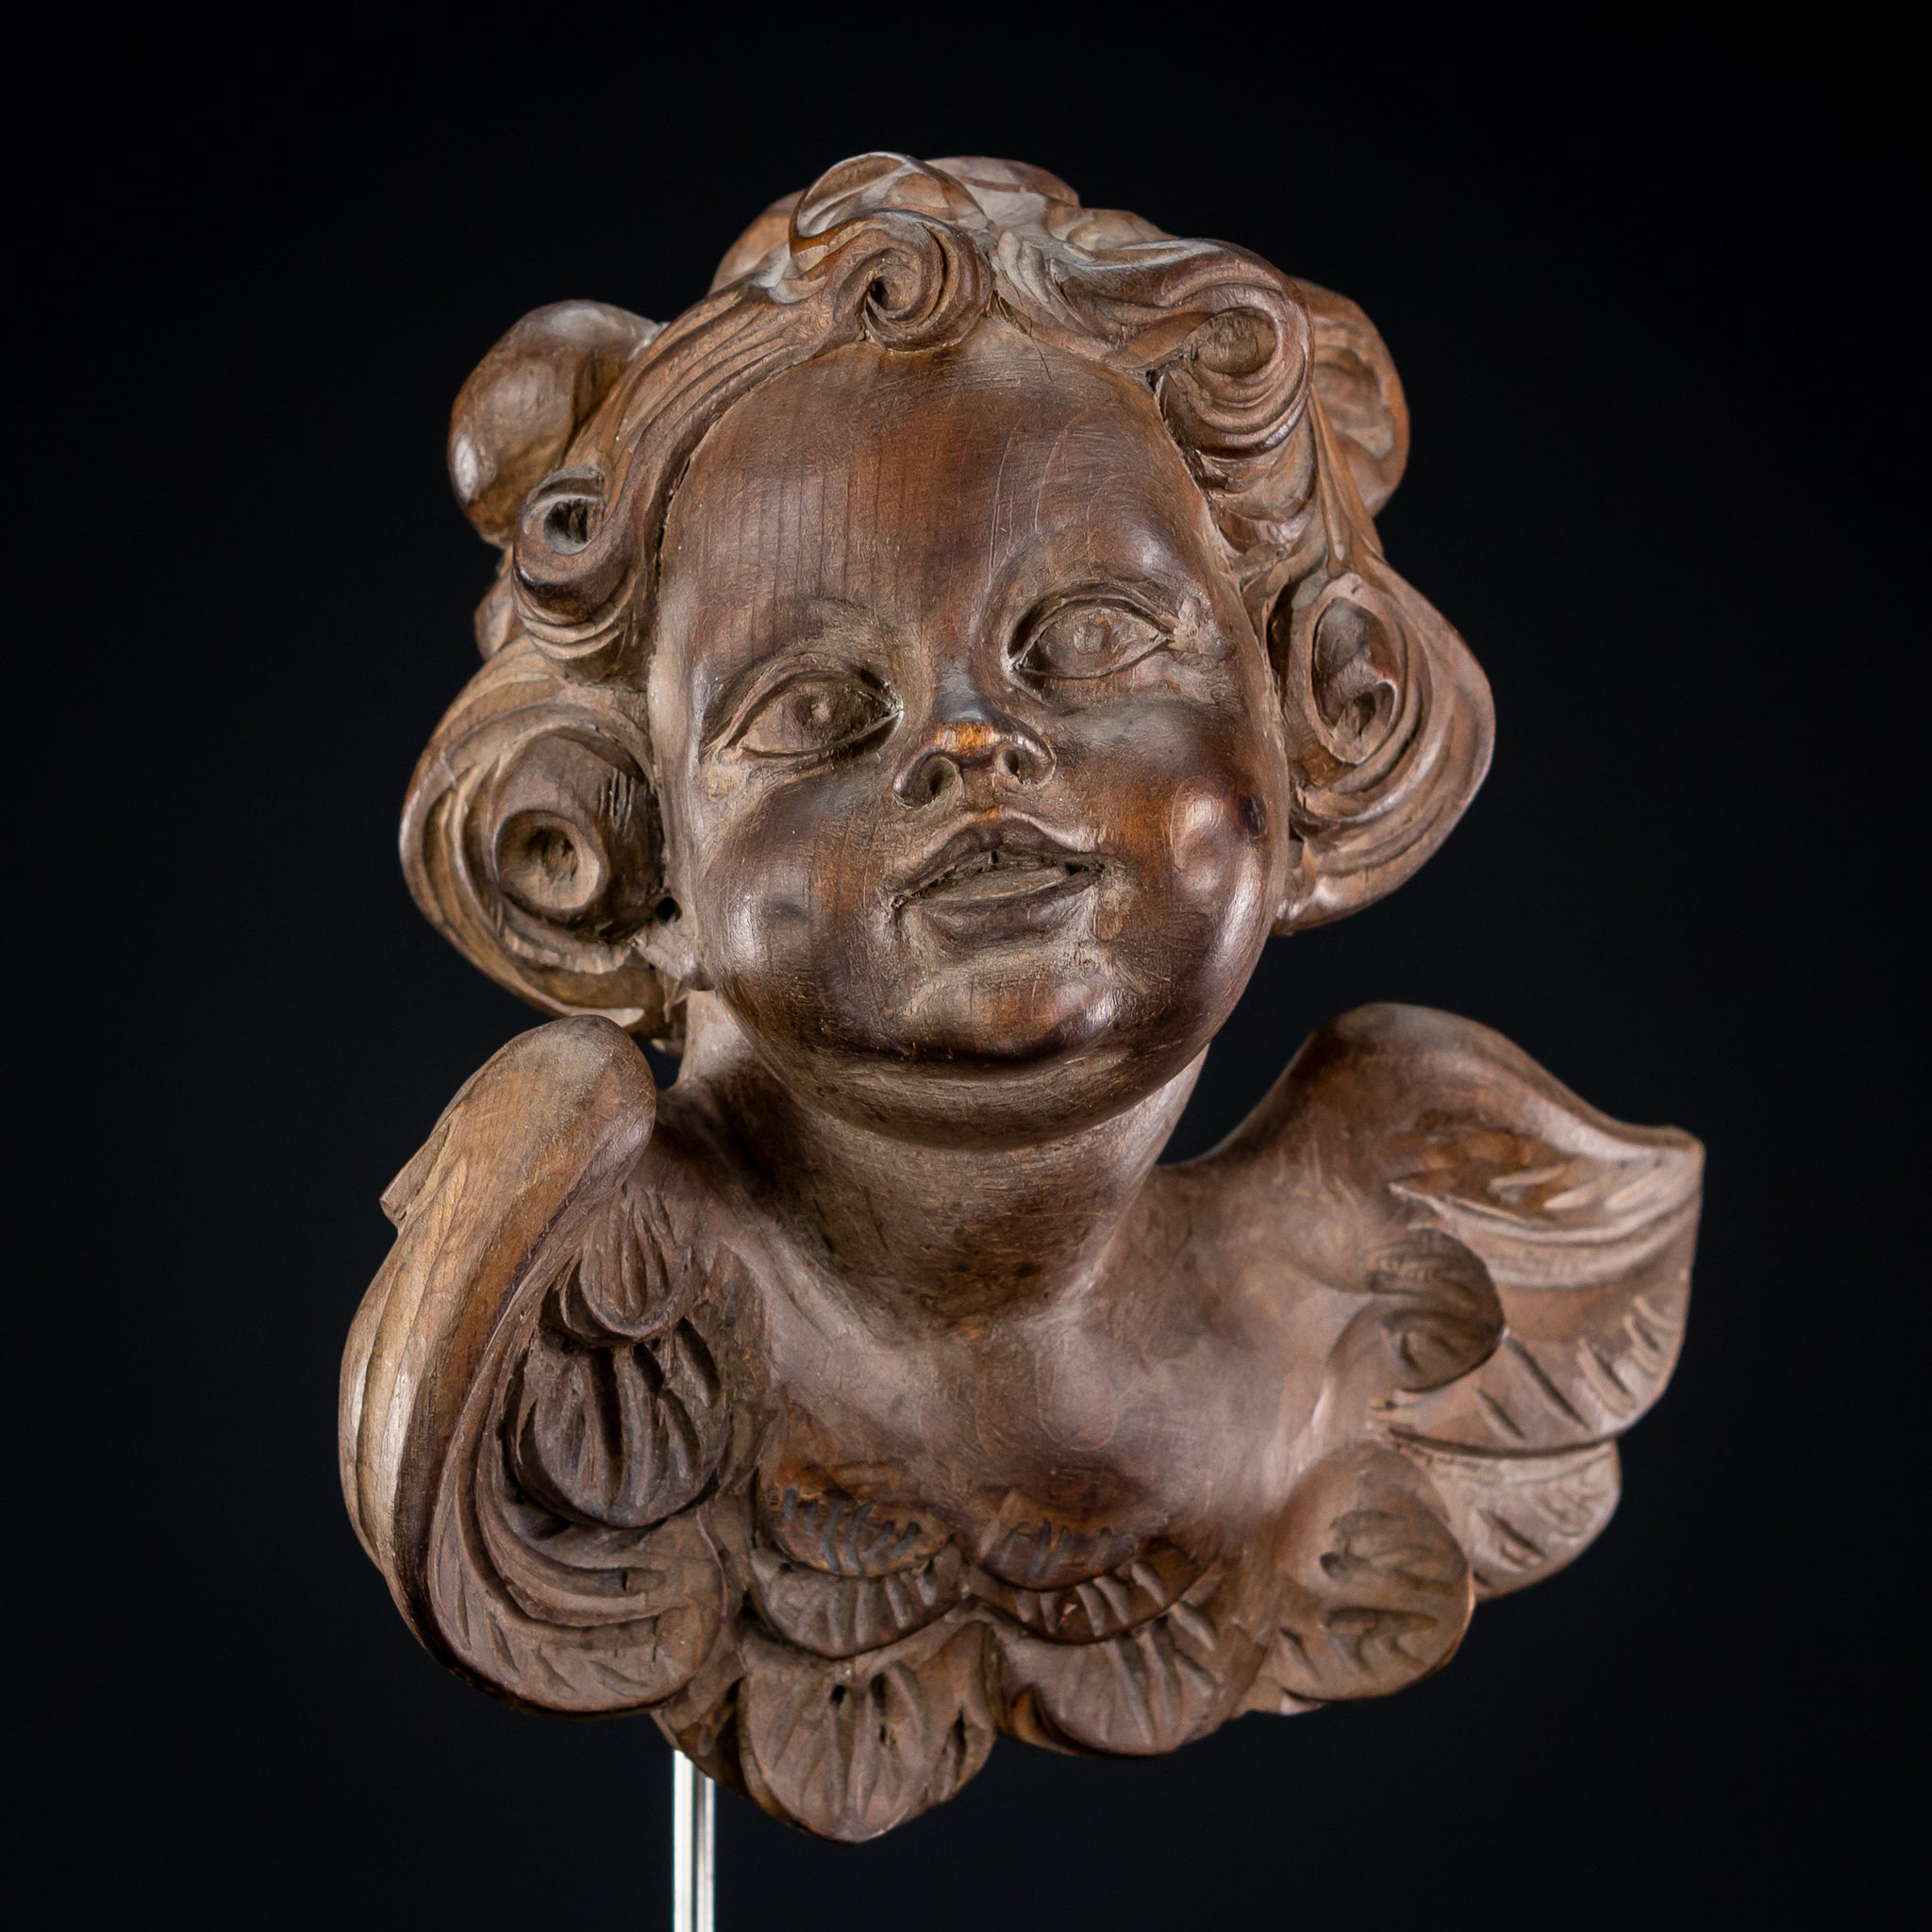 Angel Sculpture | Antique Wood Carving 9.5""